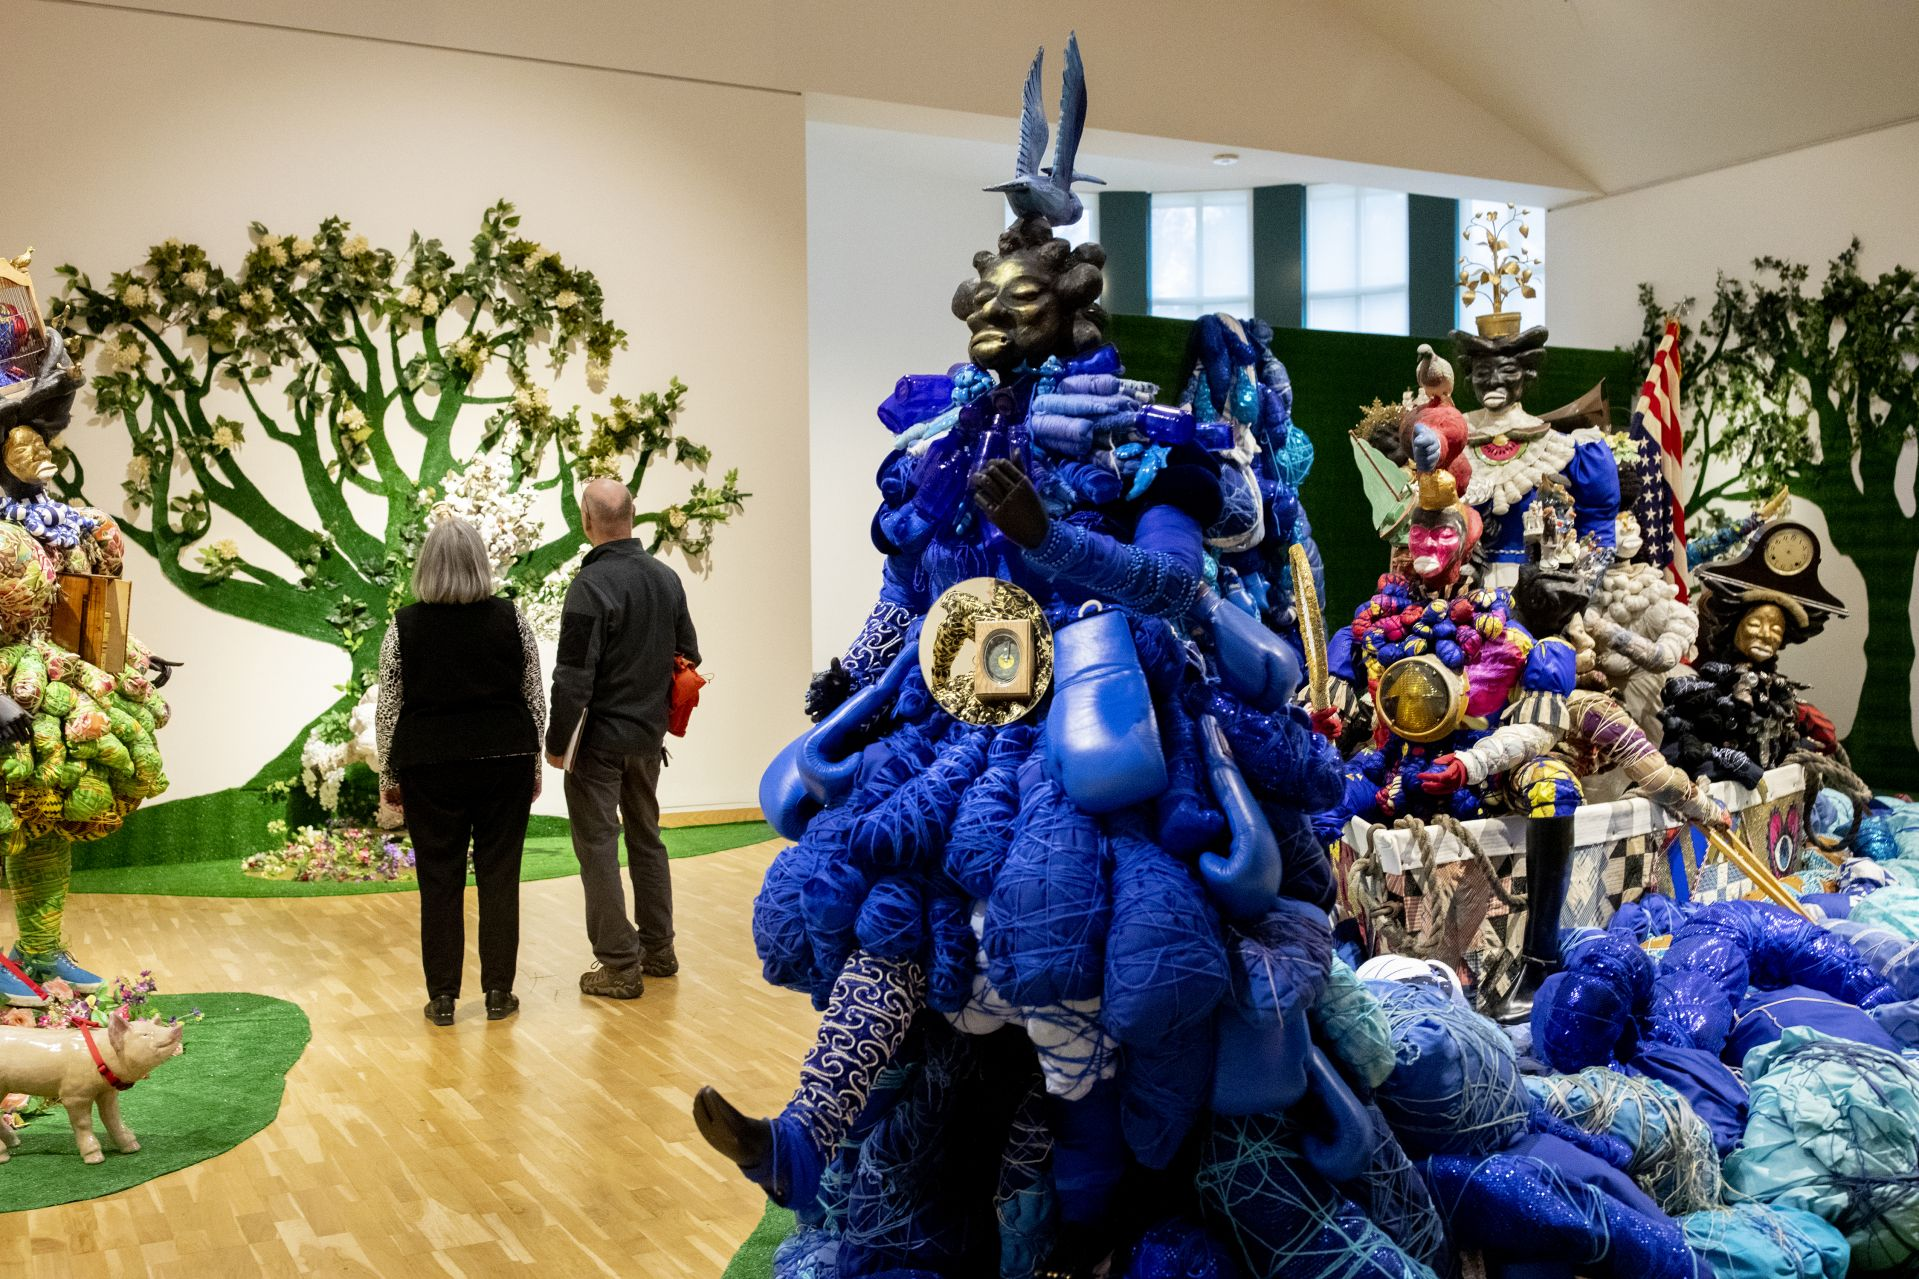 Vanessa German's exhibition, <em>Miracles and Glory Abound</em>, was shown in the Bates Museum of Art in 2019–20. (Phyllis Graber Jensen/Bates College)